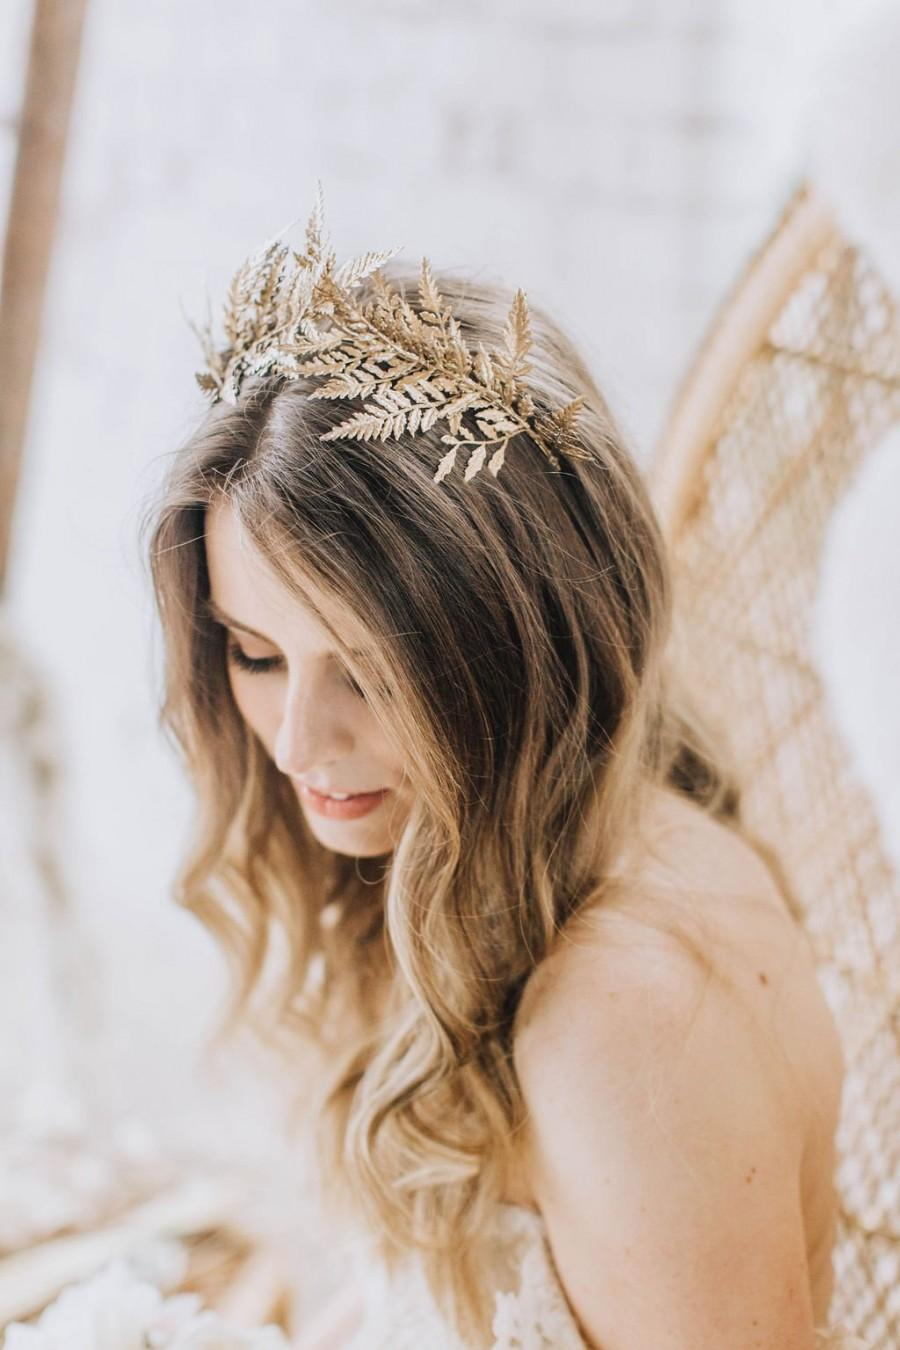 Mariage - Gold flower crown, gold tiara, goddess crown, gilded headpiece, whimsical wedding crown, golden hair accessory, boho bridal headpiece